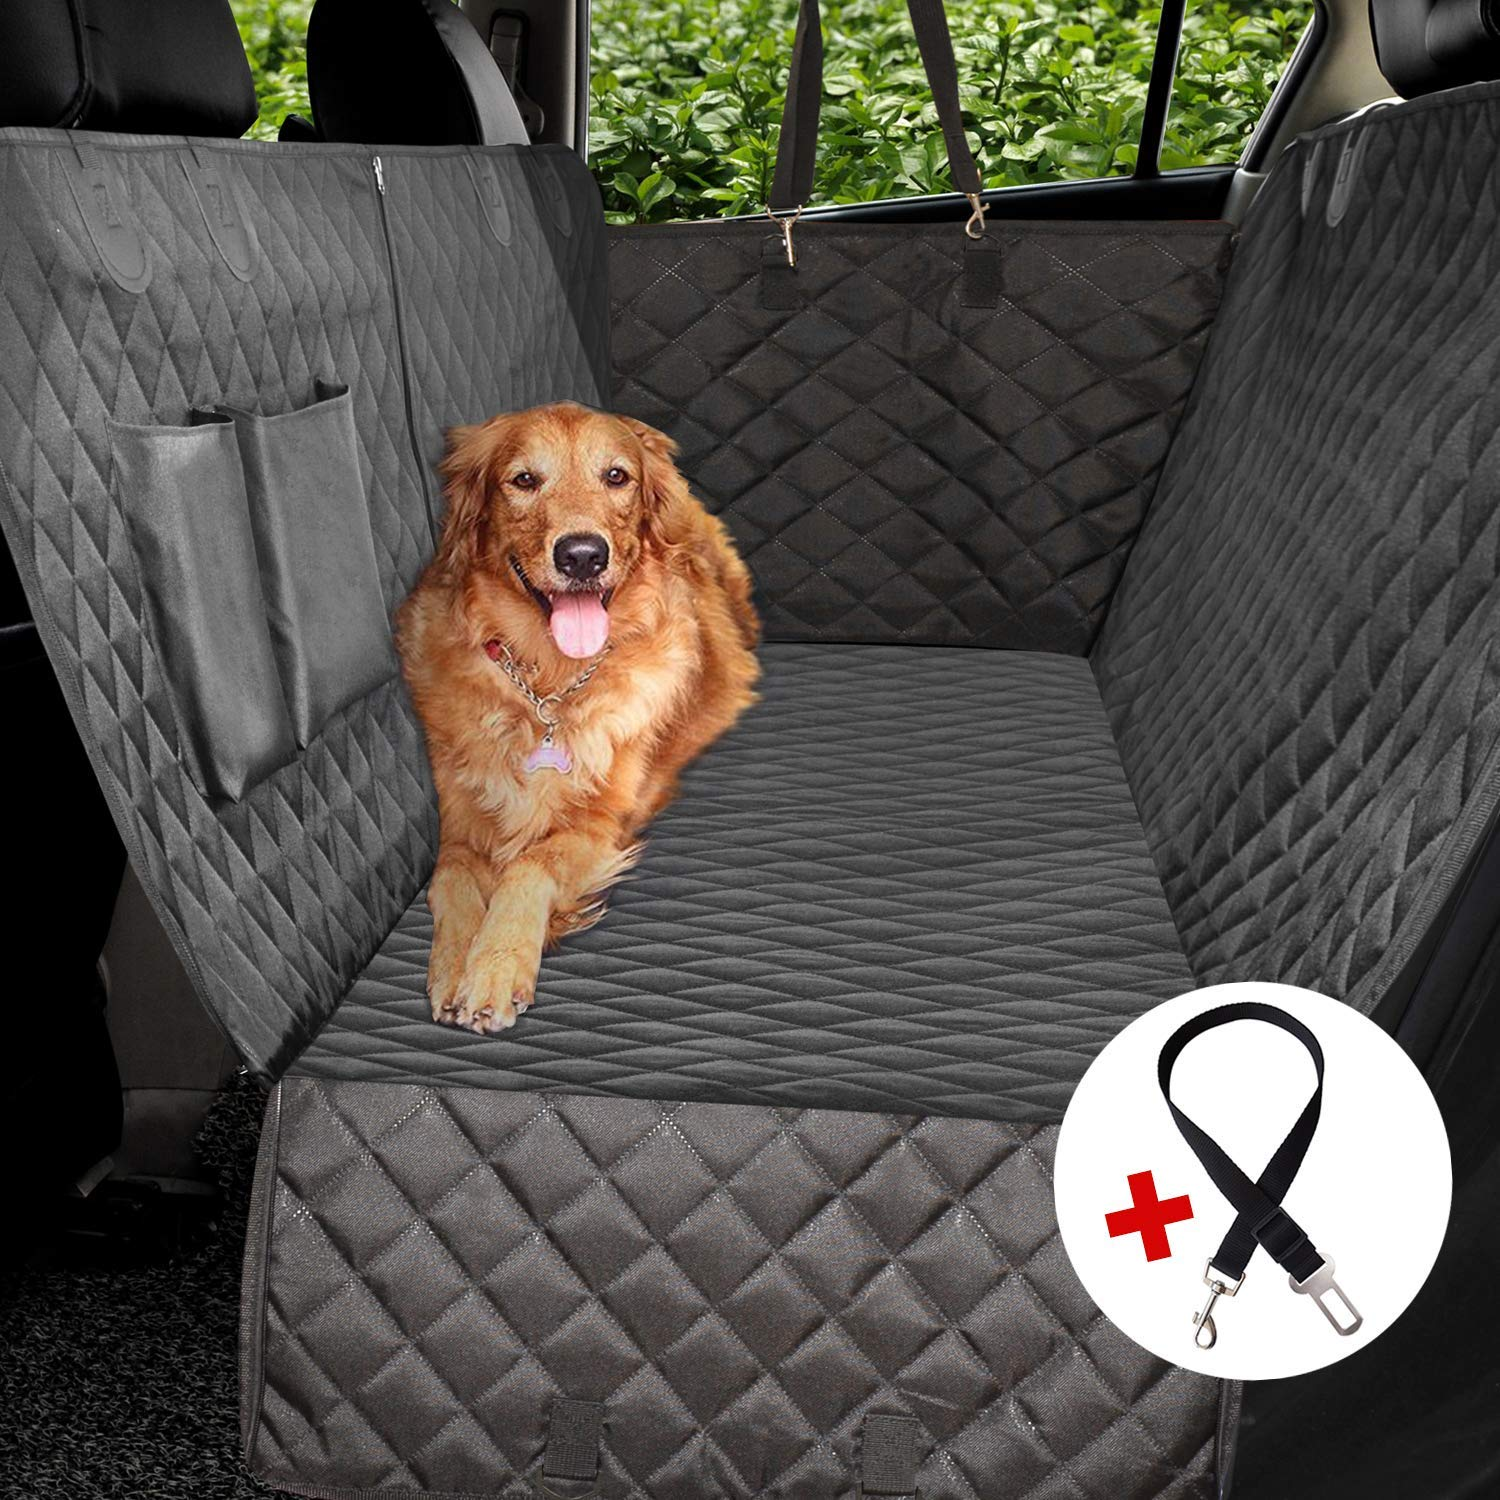 Vailge Dog Car Seat Covers, 100% Waterproof Scratch Proof Nonslip Dog Seat Cover, 600D Heavy Duty seat Cover for Dogs, Dog car Hammock Pet Seat Cover for Back Seat car Trucks SUV by Vailge